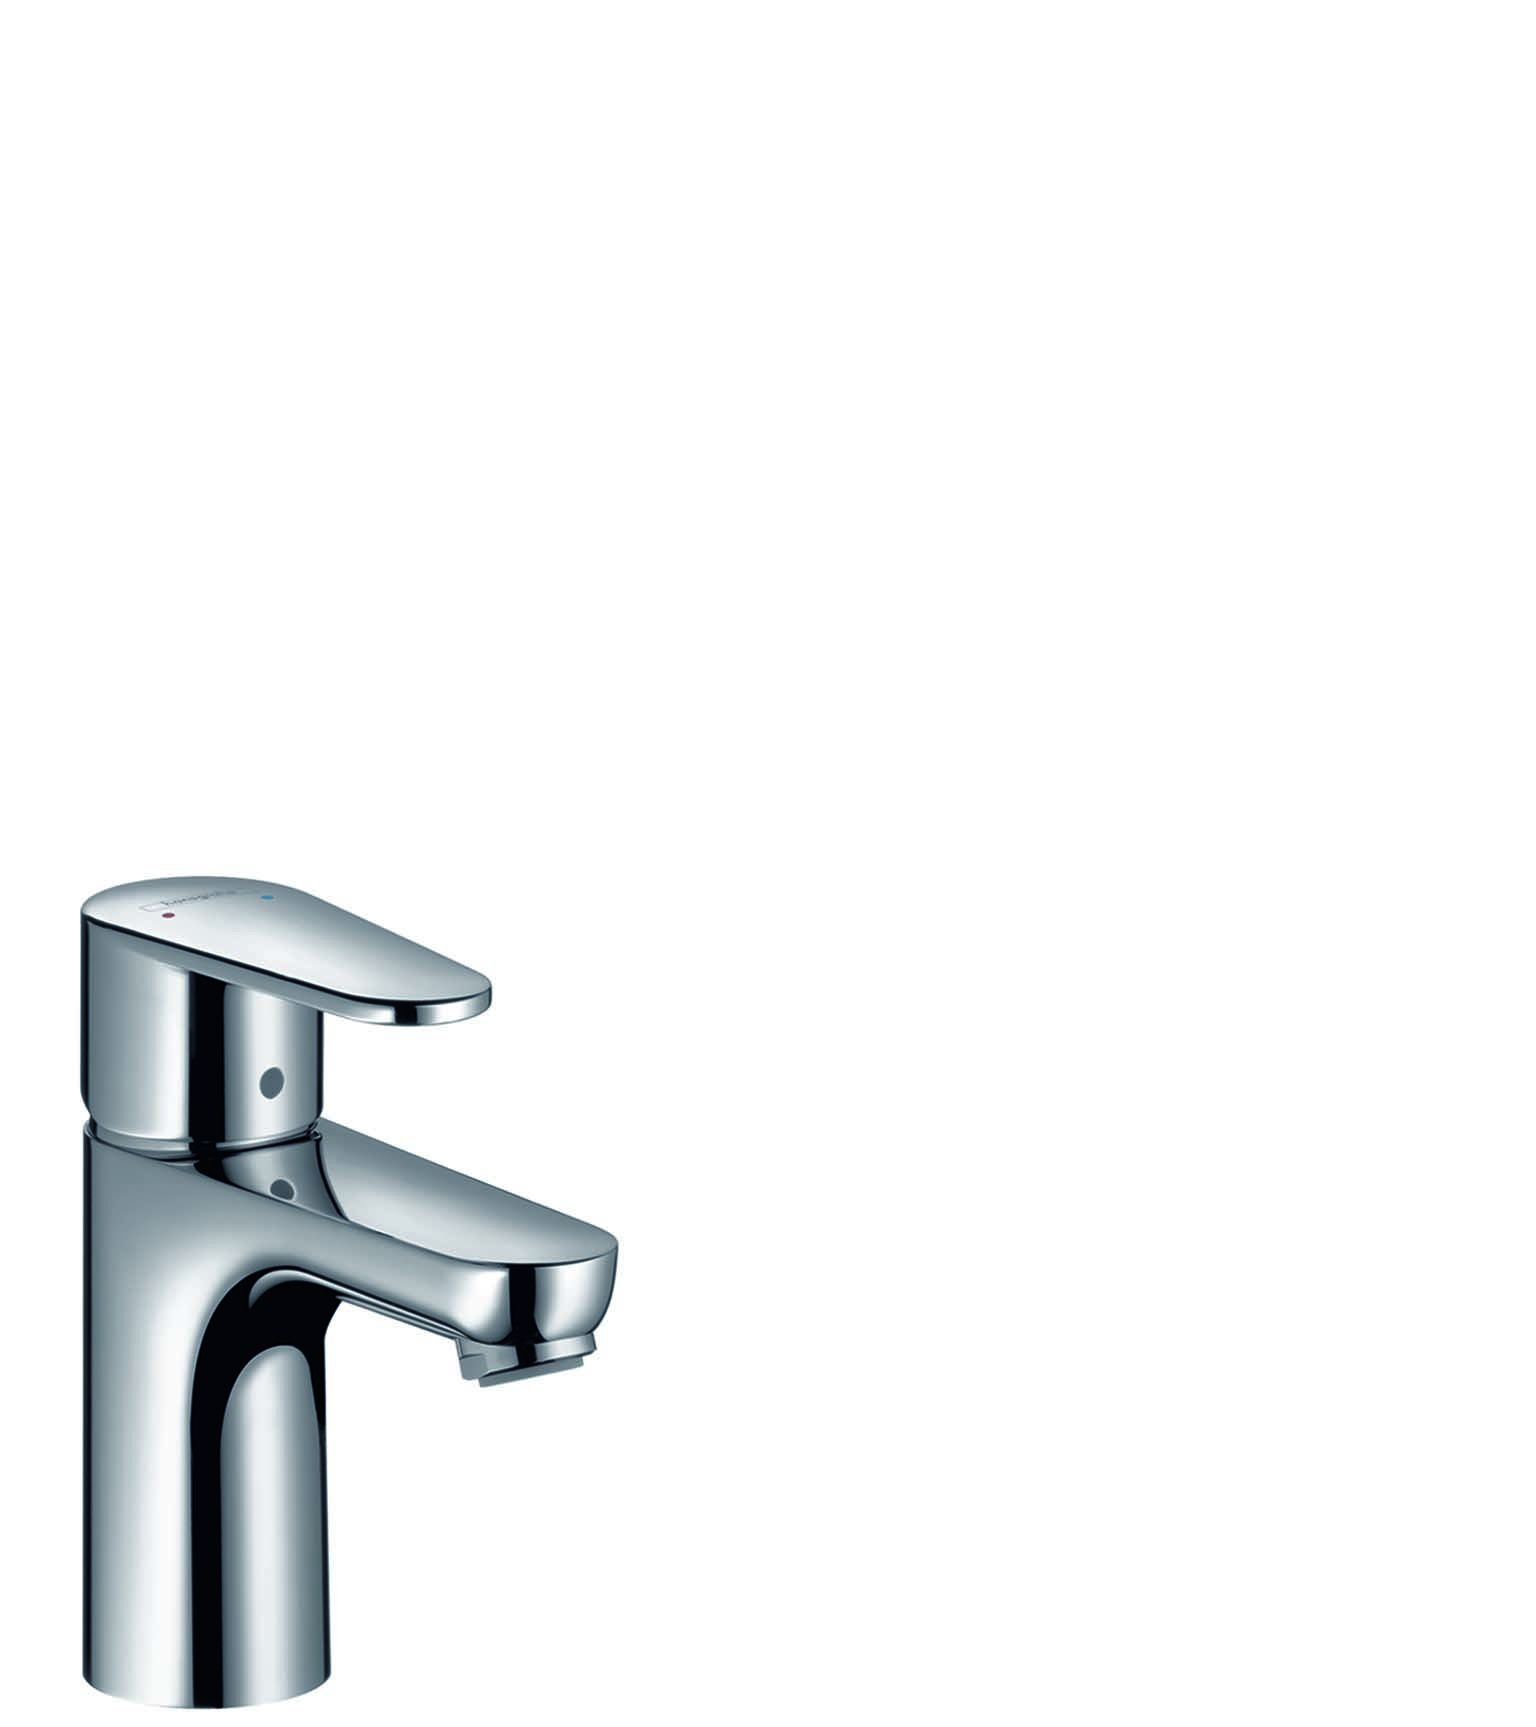 Hansgrohe Talis E2 - Entry - iF WORLD DESIGN GUIDE